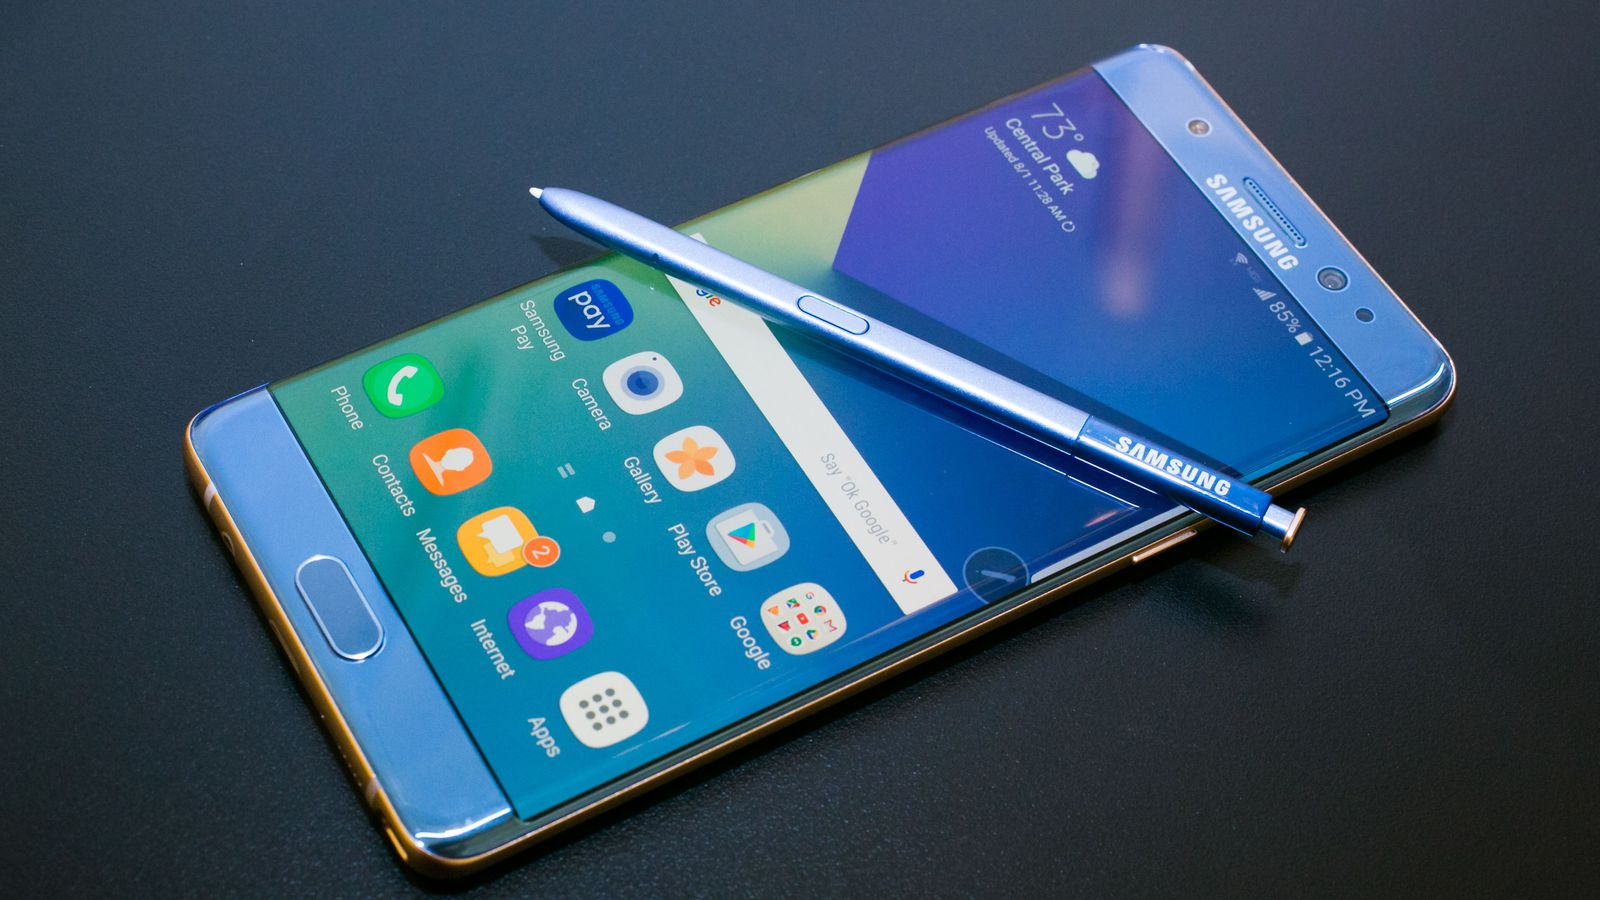 """A Galaxy Note 7 deemed safe by Samsung caught fire on Southwest Airlines flight 944 from Louisville to Baltimore. The plane was still on ground and was evacuated quickly after passengers were startled by a smoking Galaxy Note 7. The owner of the phone, Brian Green, told the Verge (http://www.theverge.com/2016/10/5/13175000/samsung-galaxy-note-7-fire-replacement-plane-battery-southwest) that he had picked up the replacement phone from AT&T store on September 21st. The phone was supposed to be safe to use as it came with a black square symbol on the box (one which Samsung now uses to differentiate safe Note 7 devices) and showed a green battery symbol. [Image: https://quip.com/-/blob/WNdAAA8gn3J/sIpDyjS87gr06Lvh4bNekA]Green said that as soon as he powered down the device, as requested by the flight crew, his device started emitting a """"thick grey-green angry smoke"""". He left the phone on the floor and quickly evacuated the flight. The phone burned through the carpet and had even damaged the subfloor of the plane. Green's phone had about 80 percent charge when the accident happened. He said that he had only once used a wireless charger to charge his device. The device is now in the hands of the local fire department for further investigation and Green has replaced his device with a new iPhone 7. In hindsight, that might not have been an entirely good decision as there have been similar incidents where iPhone 7 and 7 plus have caught fire due to battery damage (https://www.techjuice.pk/iphone-7-plus-explodes-before-even-being-taken-out-of-the-box/)."""